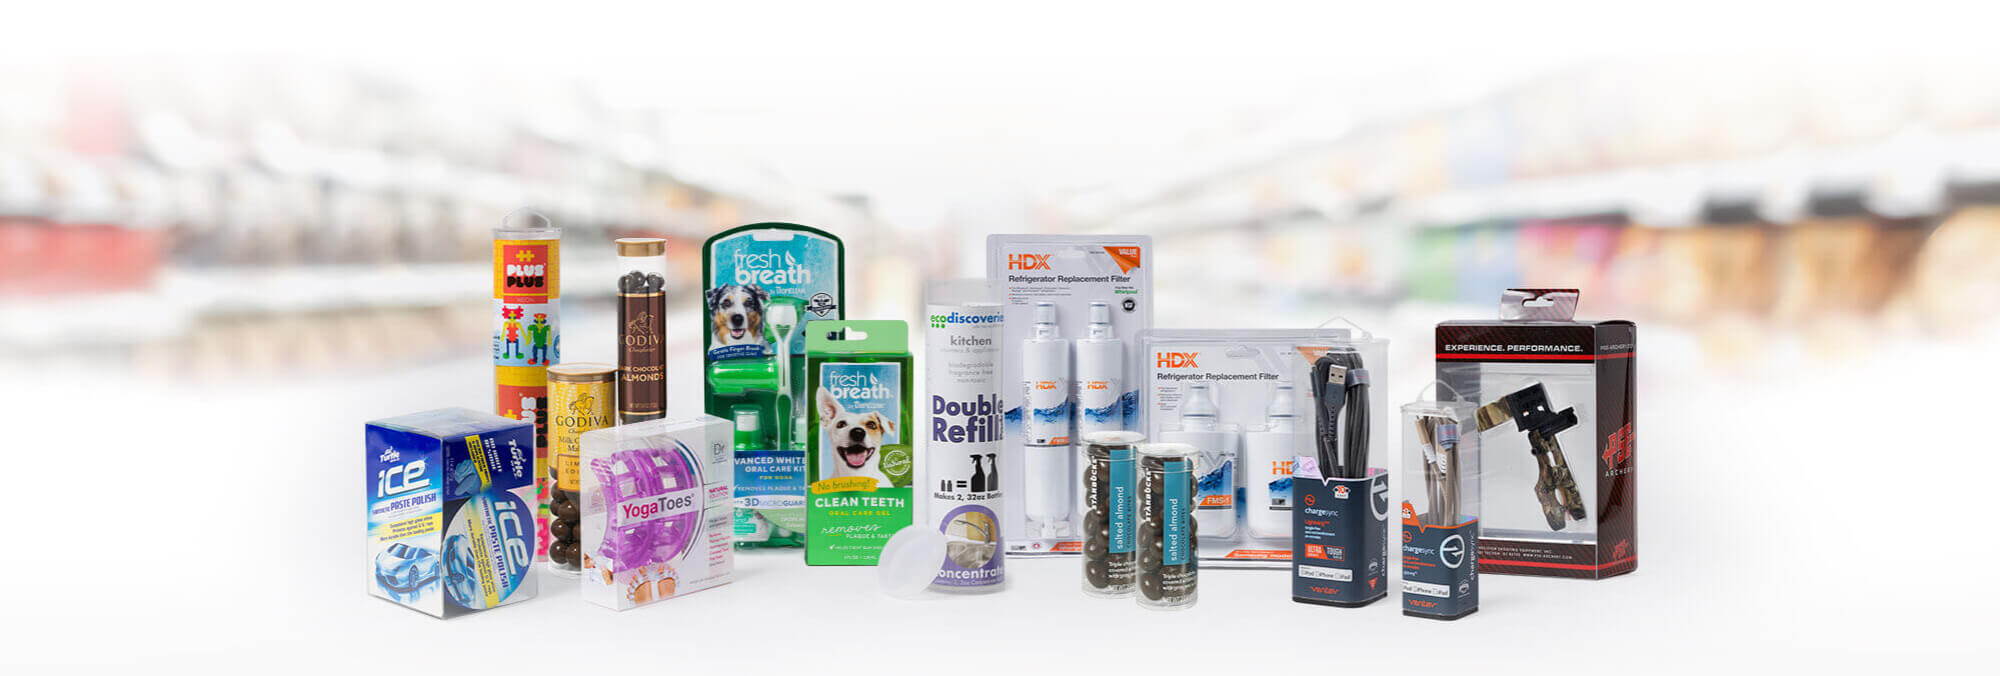 VisiPak | Clear Plastic Packaging Tubes, Containers, Clamshells, Boxes